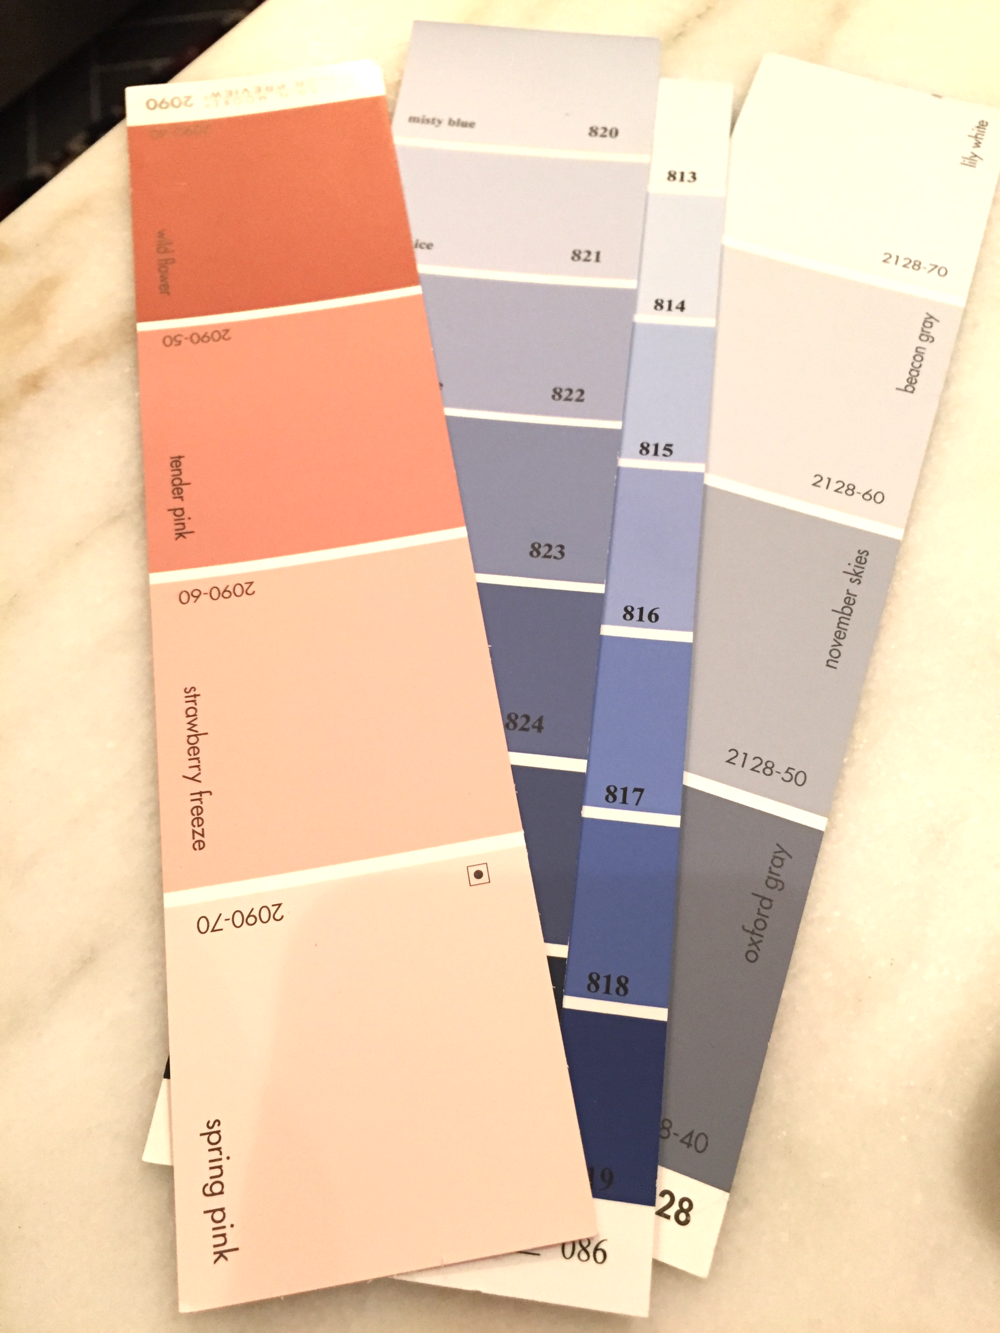 Benjamin Moore color card